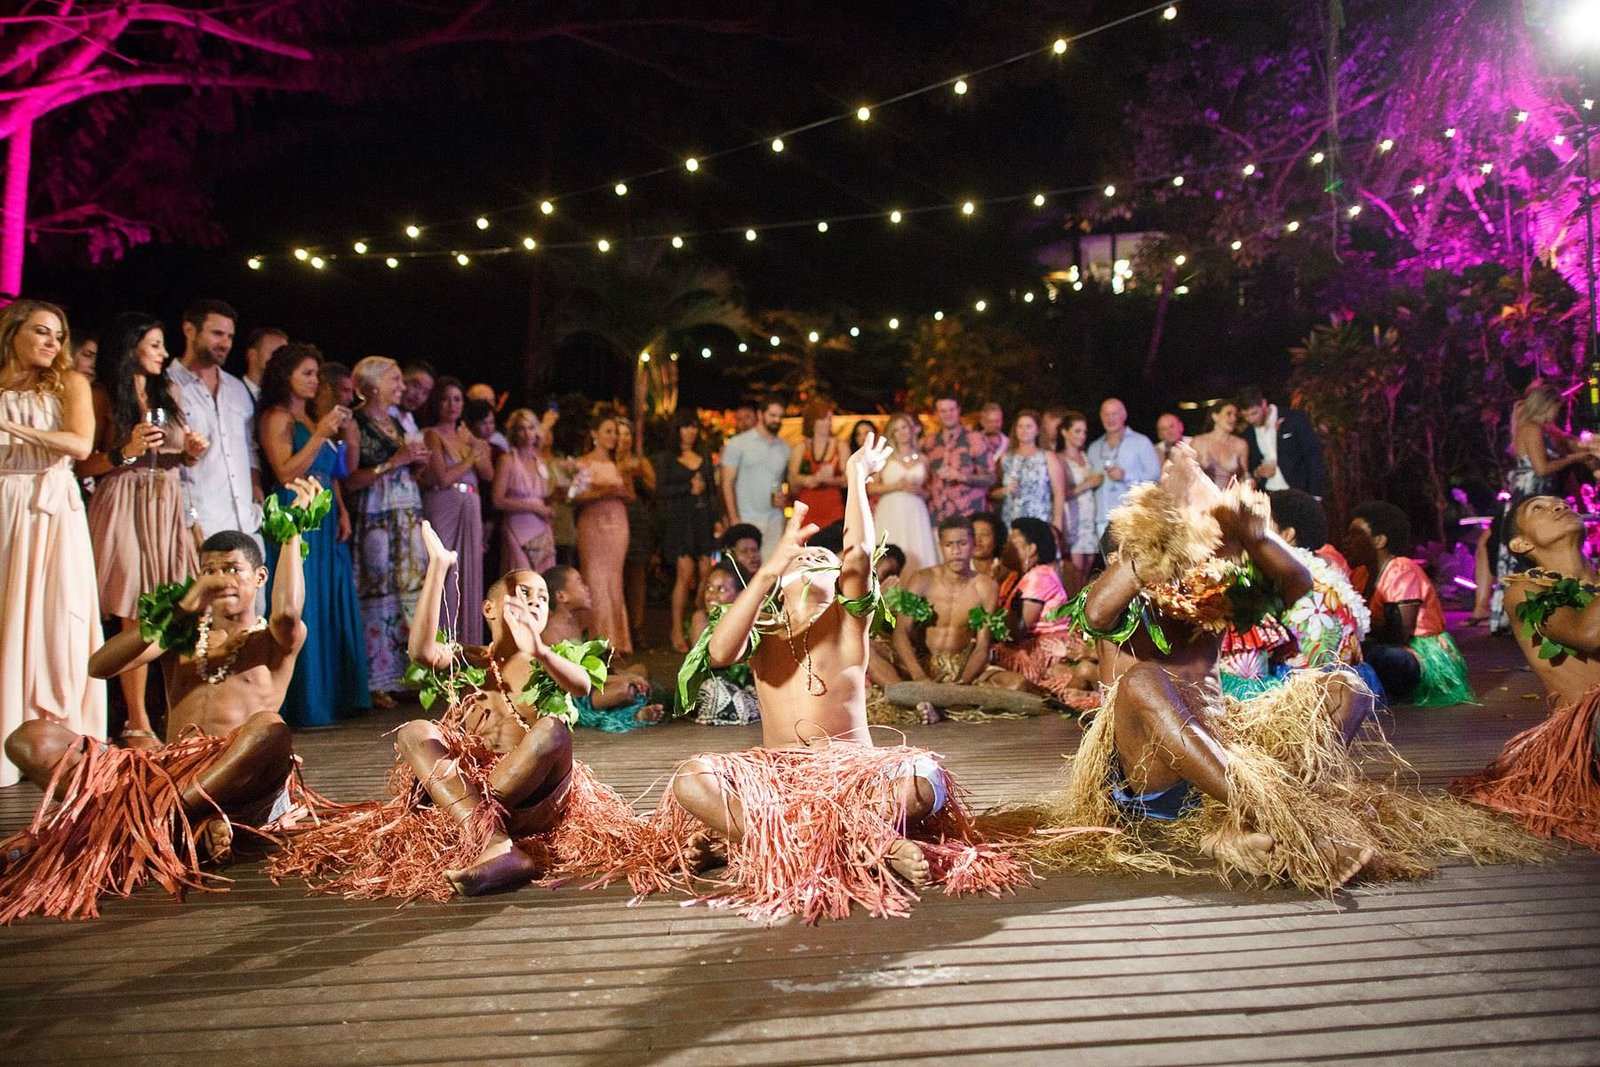 fiji_destination_wedding_tropical_koro_sun_resort_0304